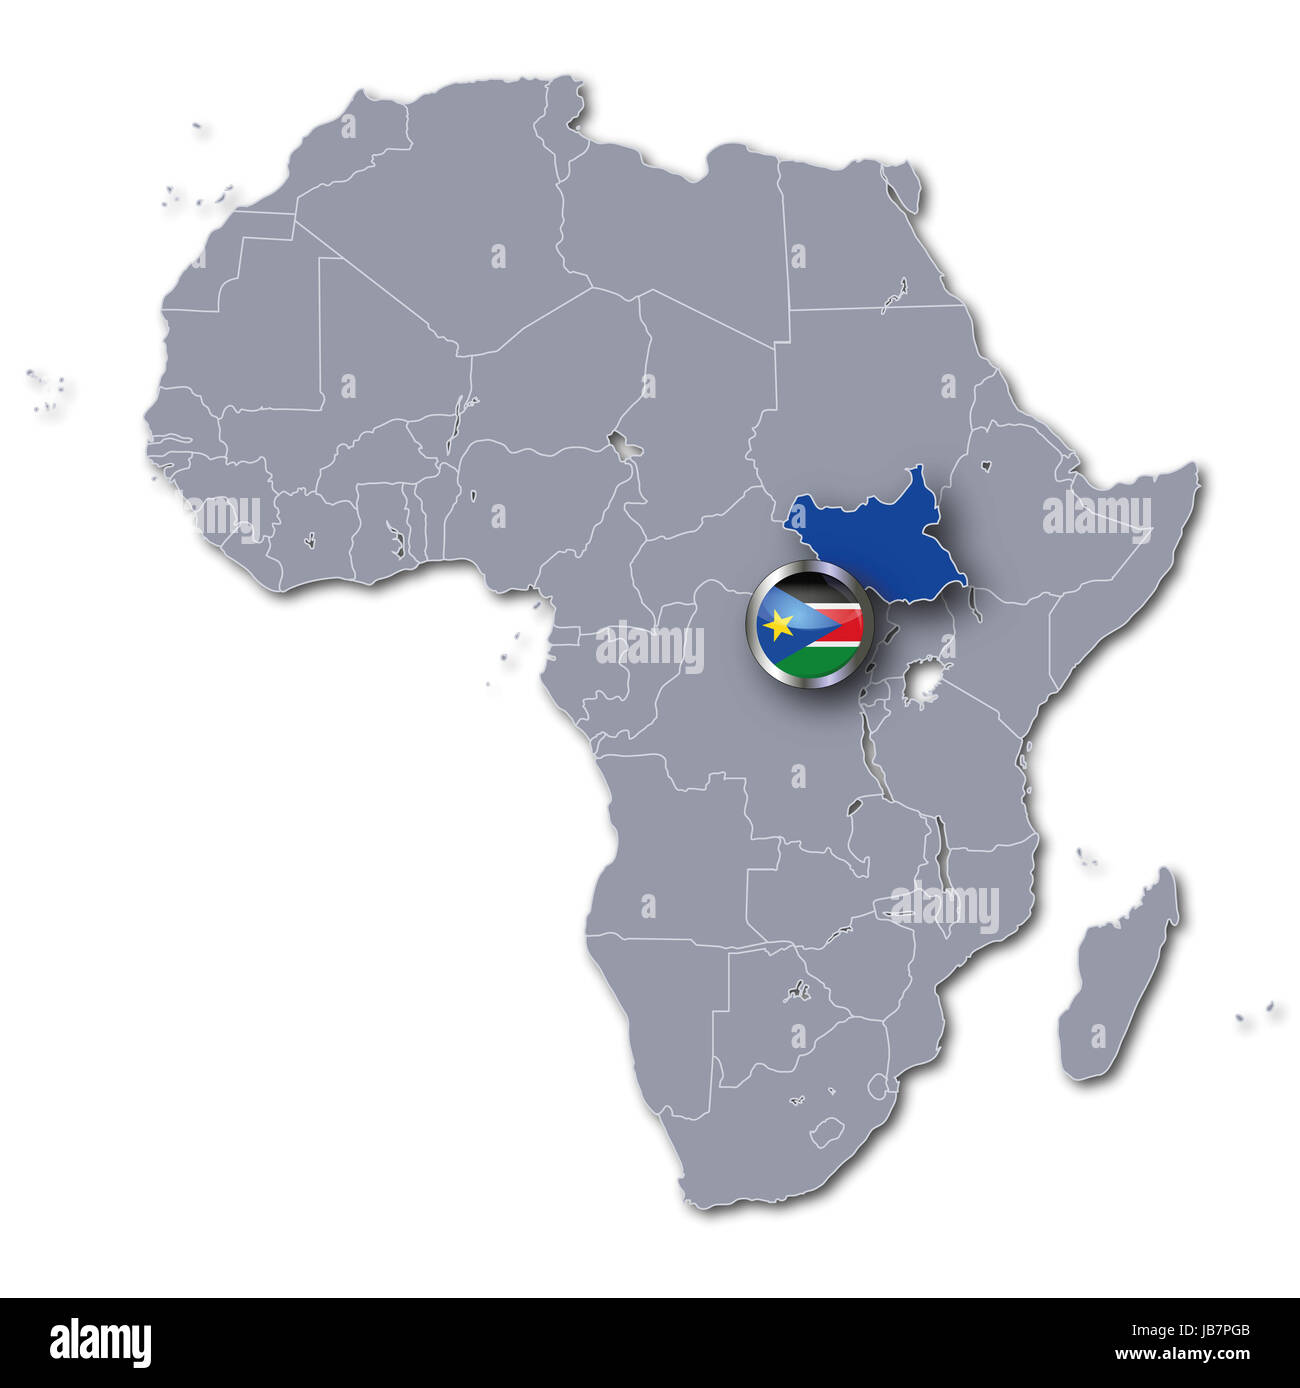 south sudan africa map Africa Map Of South Sudan Stock Photo Alamy